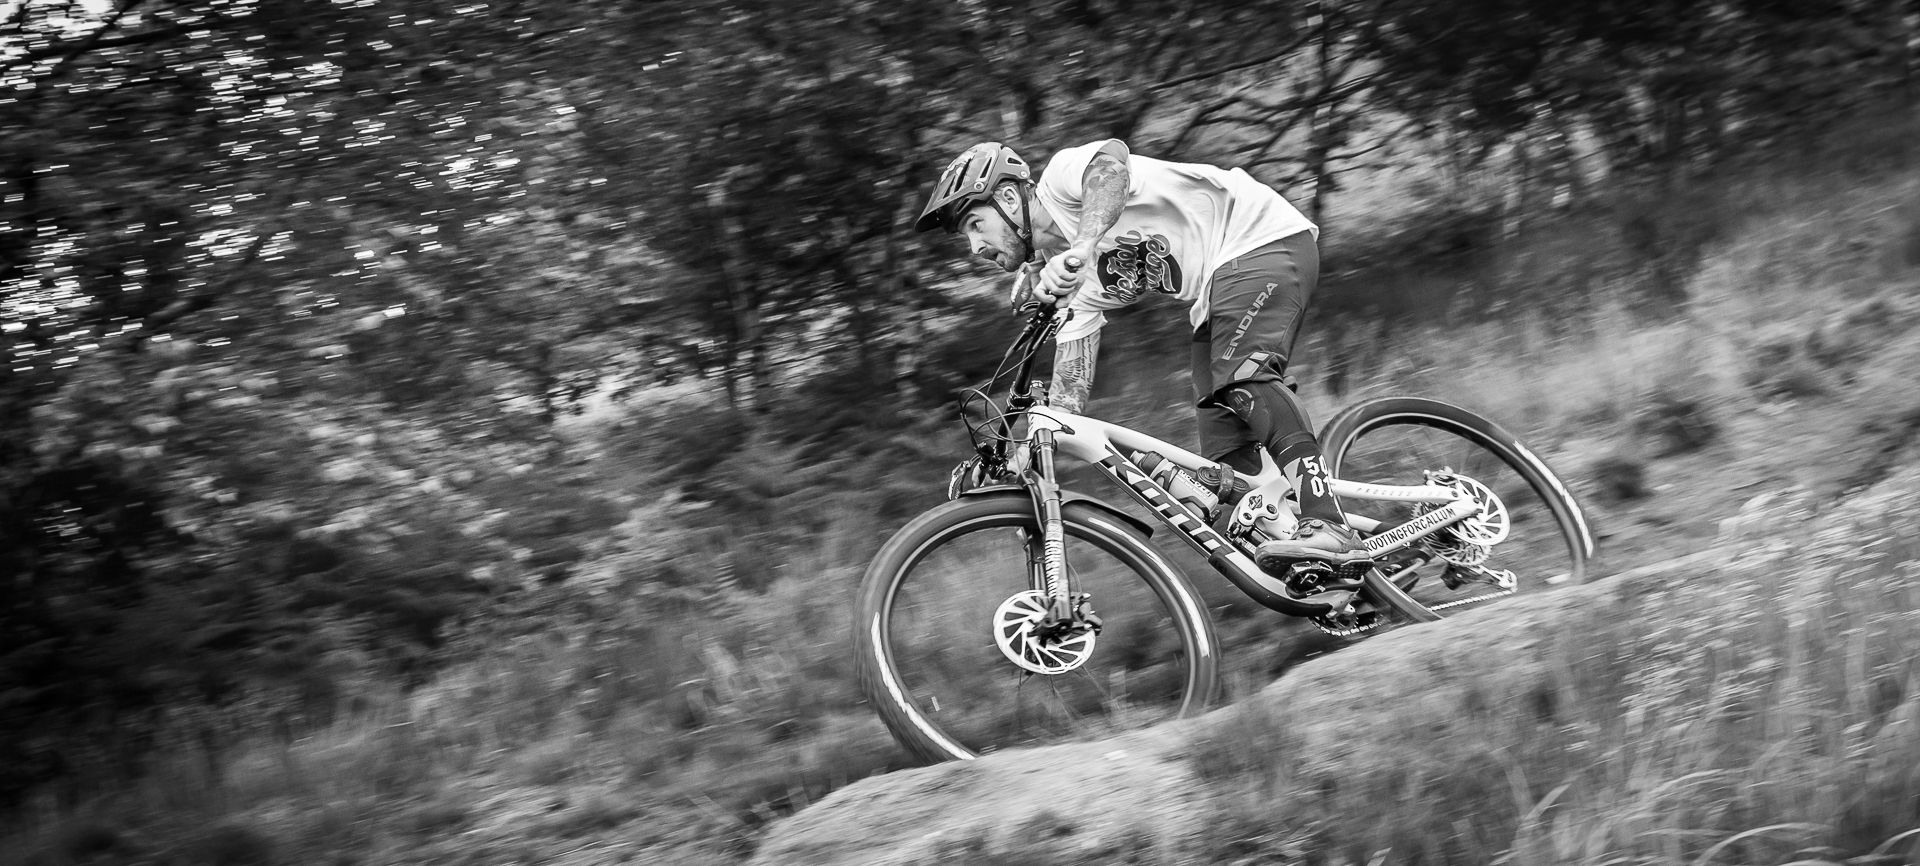 mountain bike travelling at speed downhill